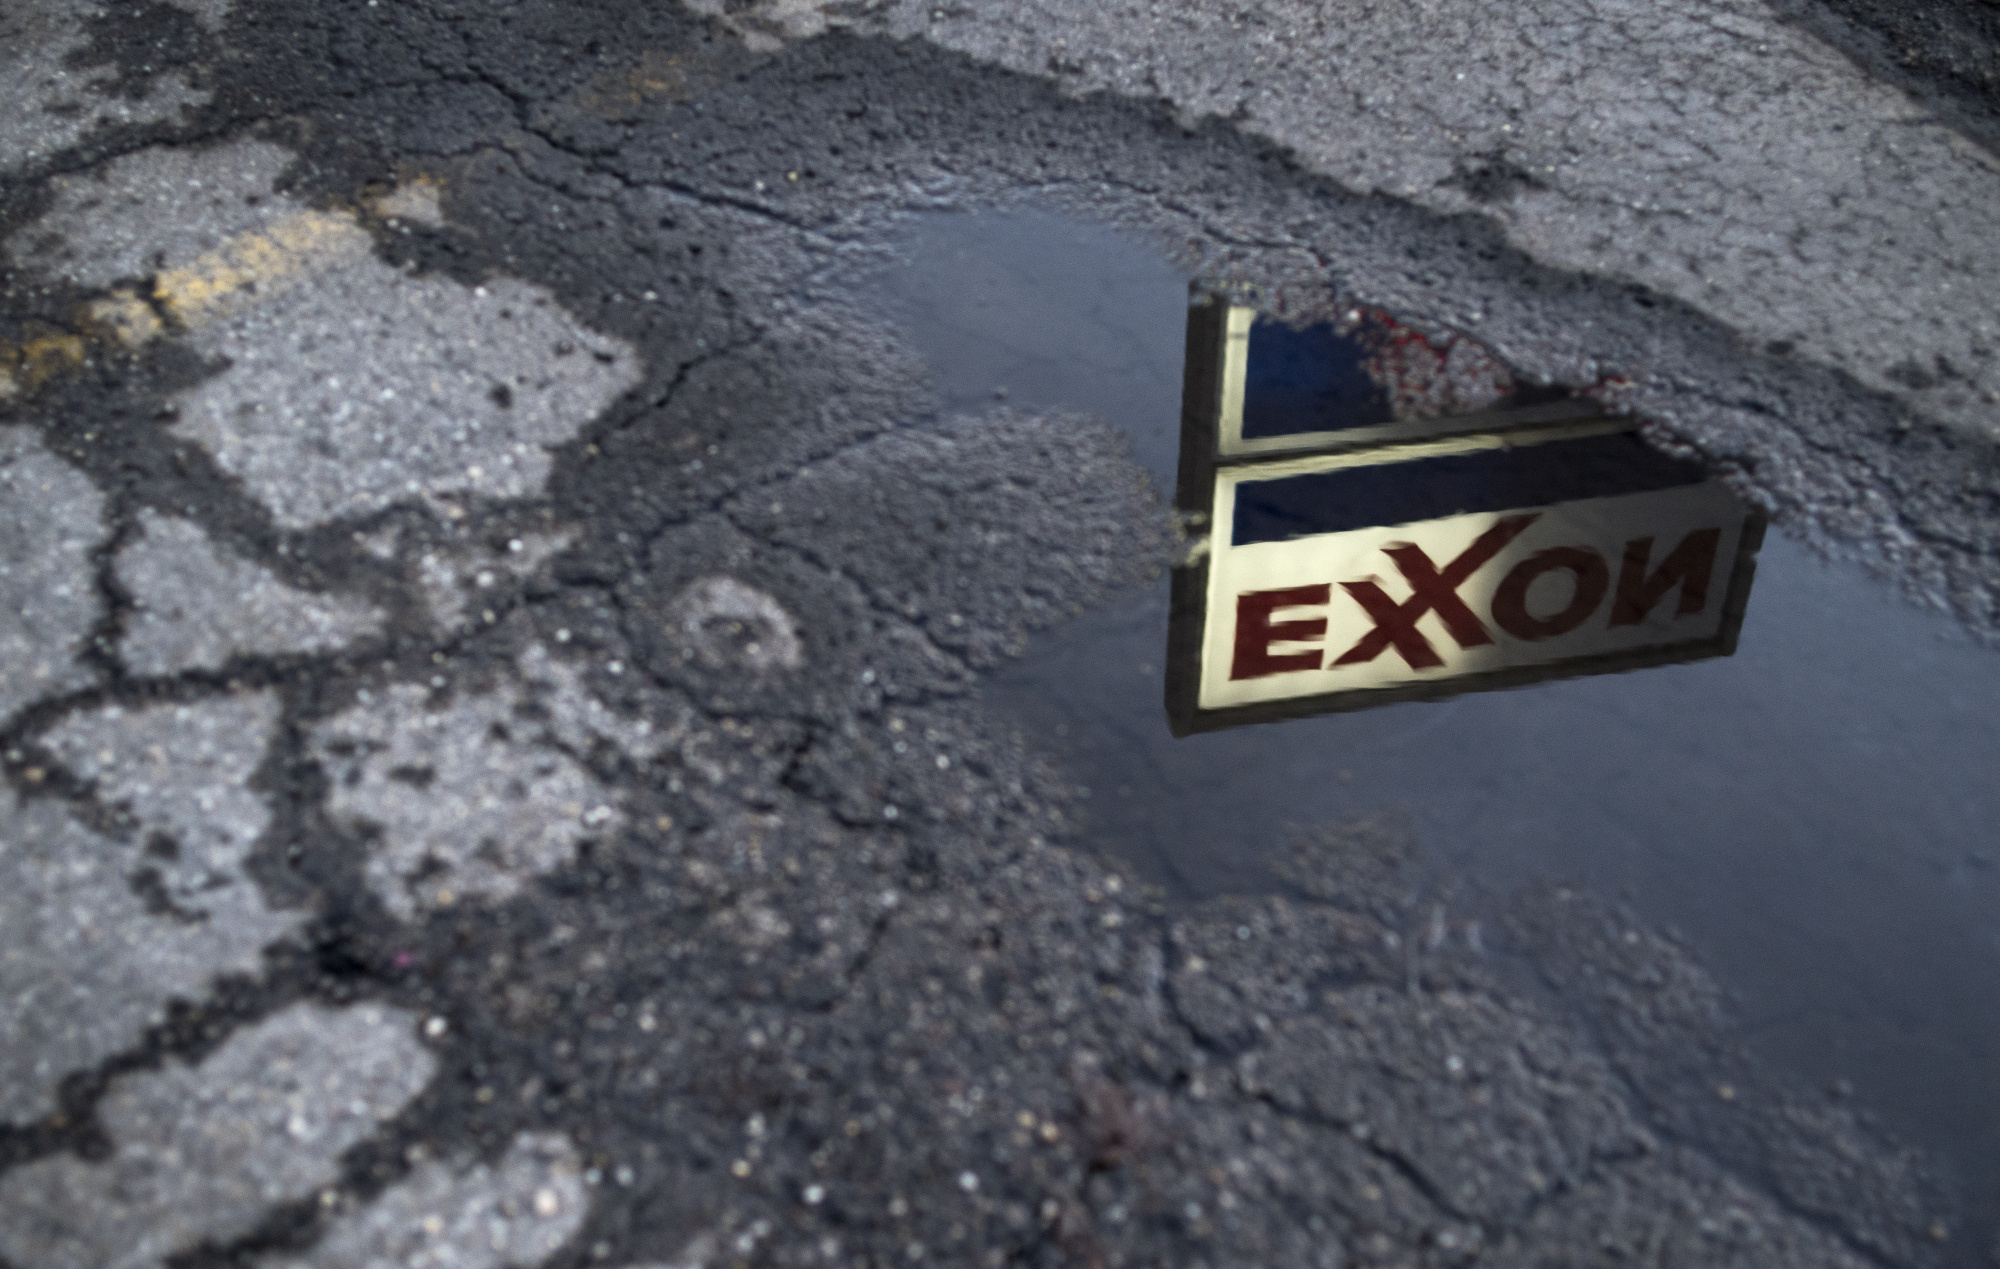 Exxon Mobil Corp. signage is reflected in a puddle at a gas station in Nashport, Ohio, U.S., on Friday, Jan. 26, 2018.  Photographer: Ty Wright/Bloomberg